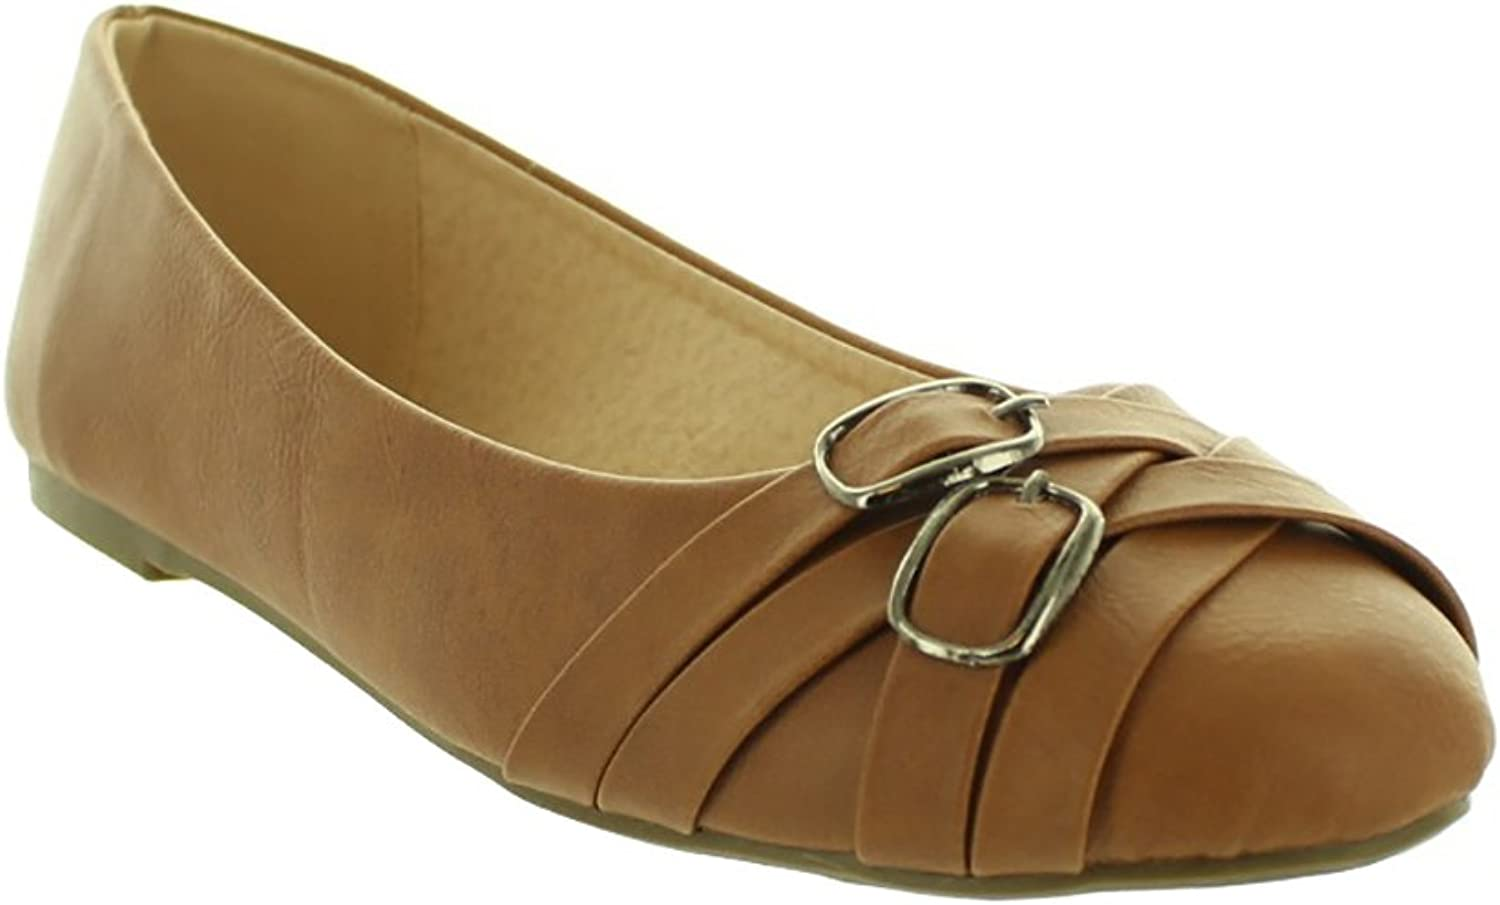 Fashion Focus LA FLY-2-CG Women's Fashion Designer Flats Slippers Slip-on in Cognac Brown